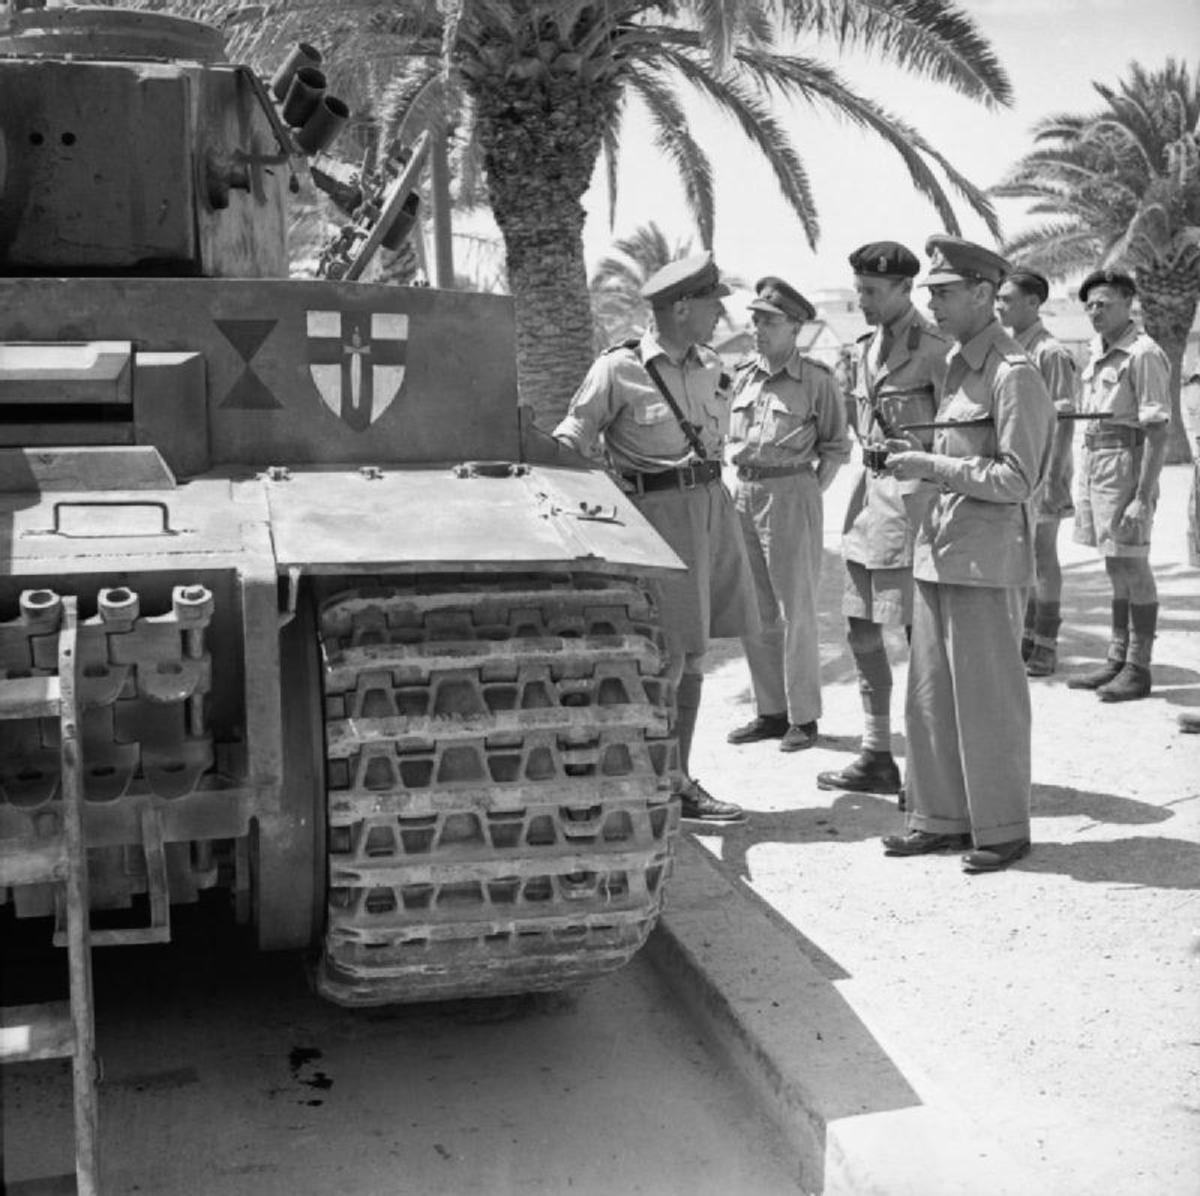 Photo by Sgt Gunn, shows The British Army in Tunisia, 1943. Here, King George VI inspected the captured Tiger Tank 131.